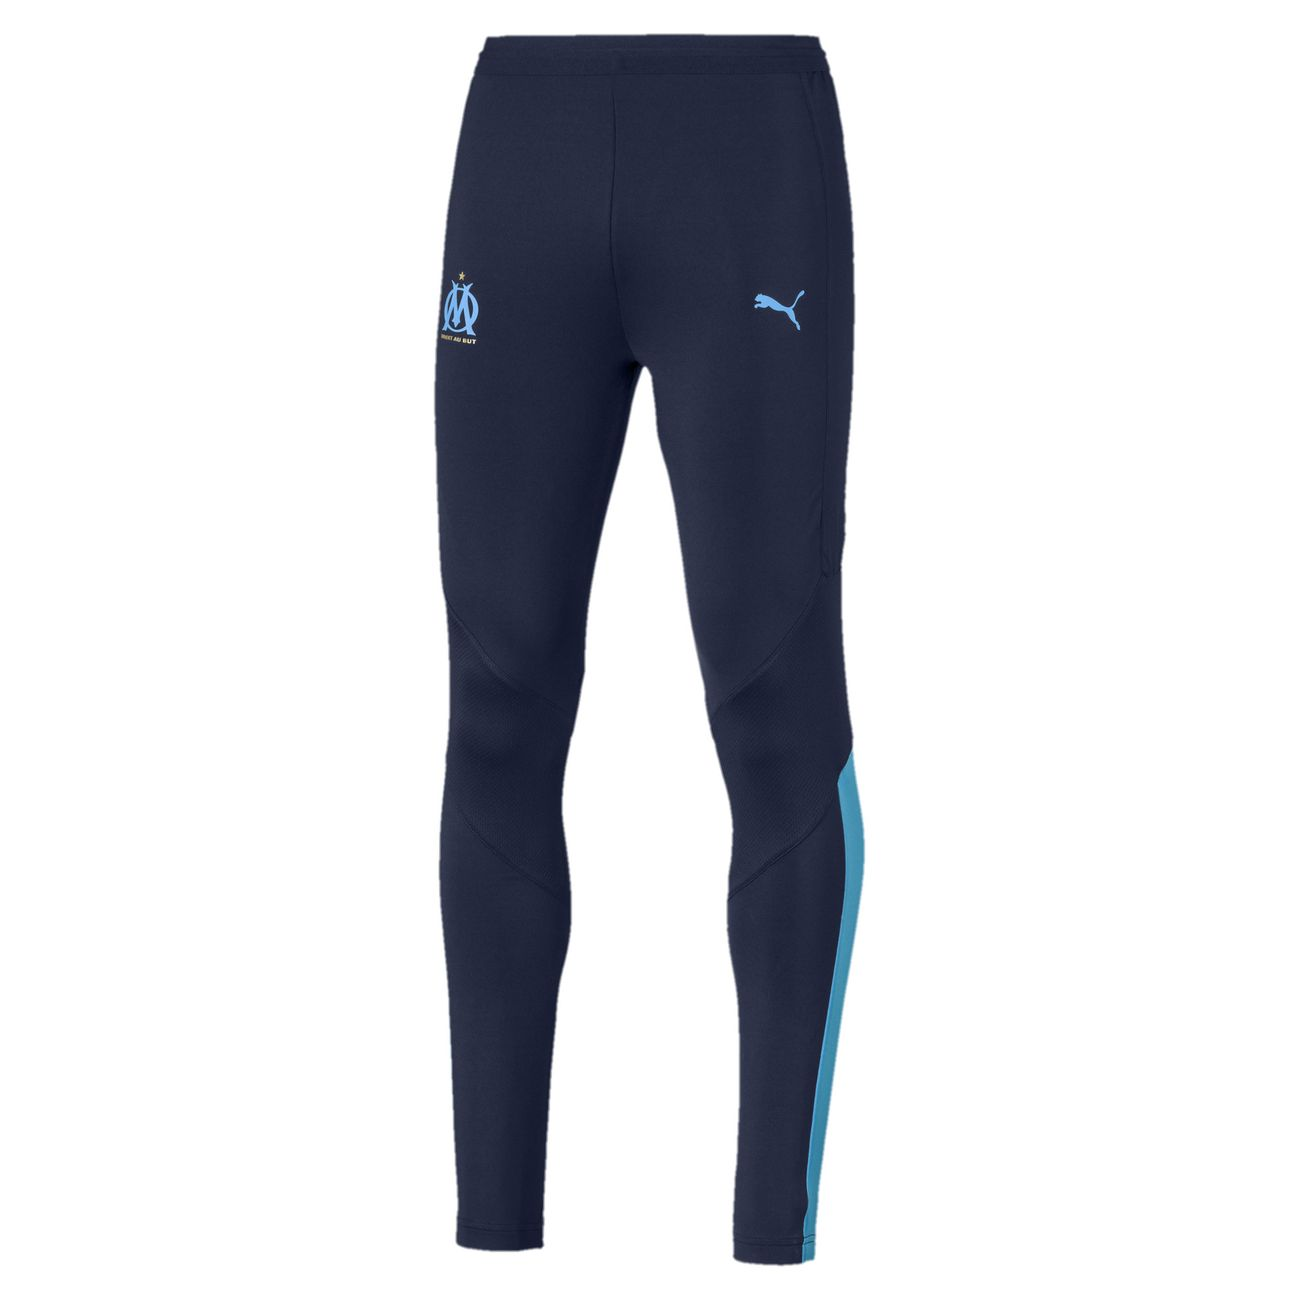 Mode- Lifestyle homme PUMA Pantalon Om Training 2019-20